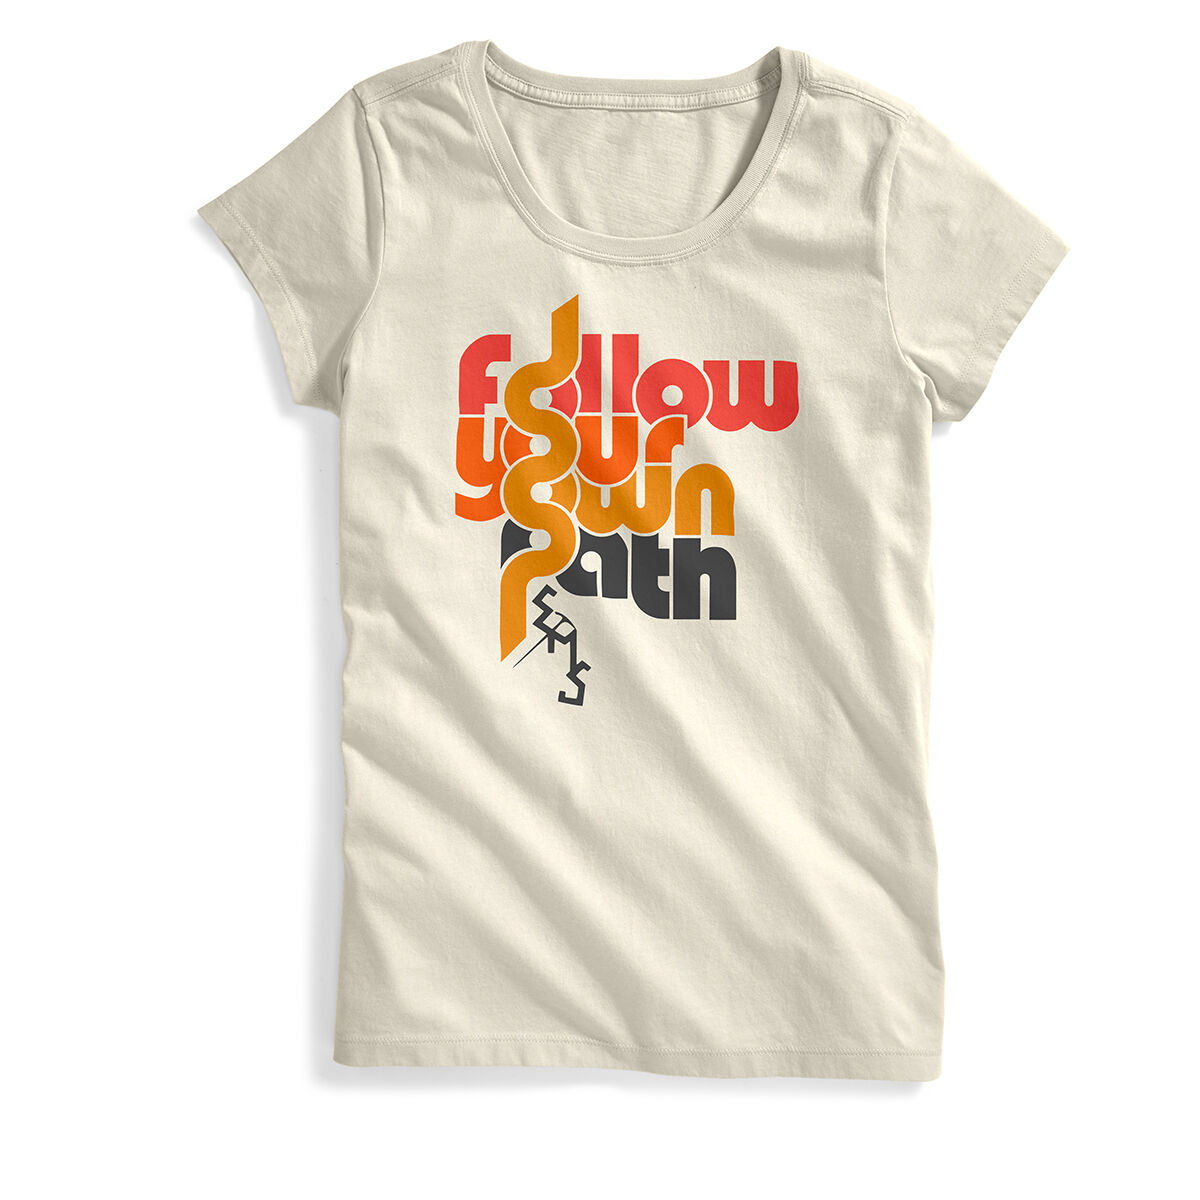 Ems Women's Follow Your Own Path Short-Sleeve Graphic Tee - White, XL